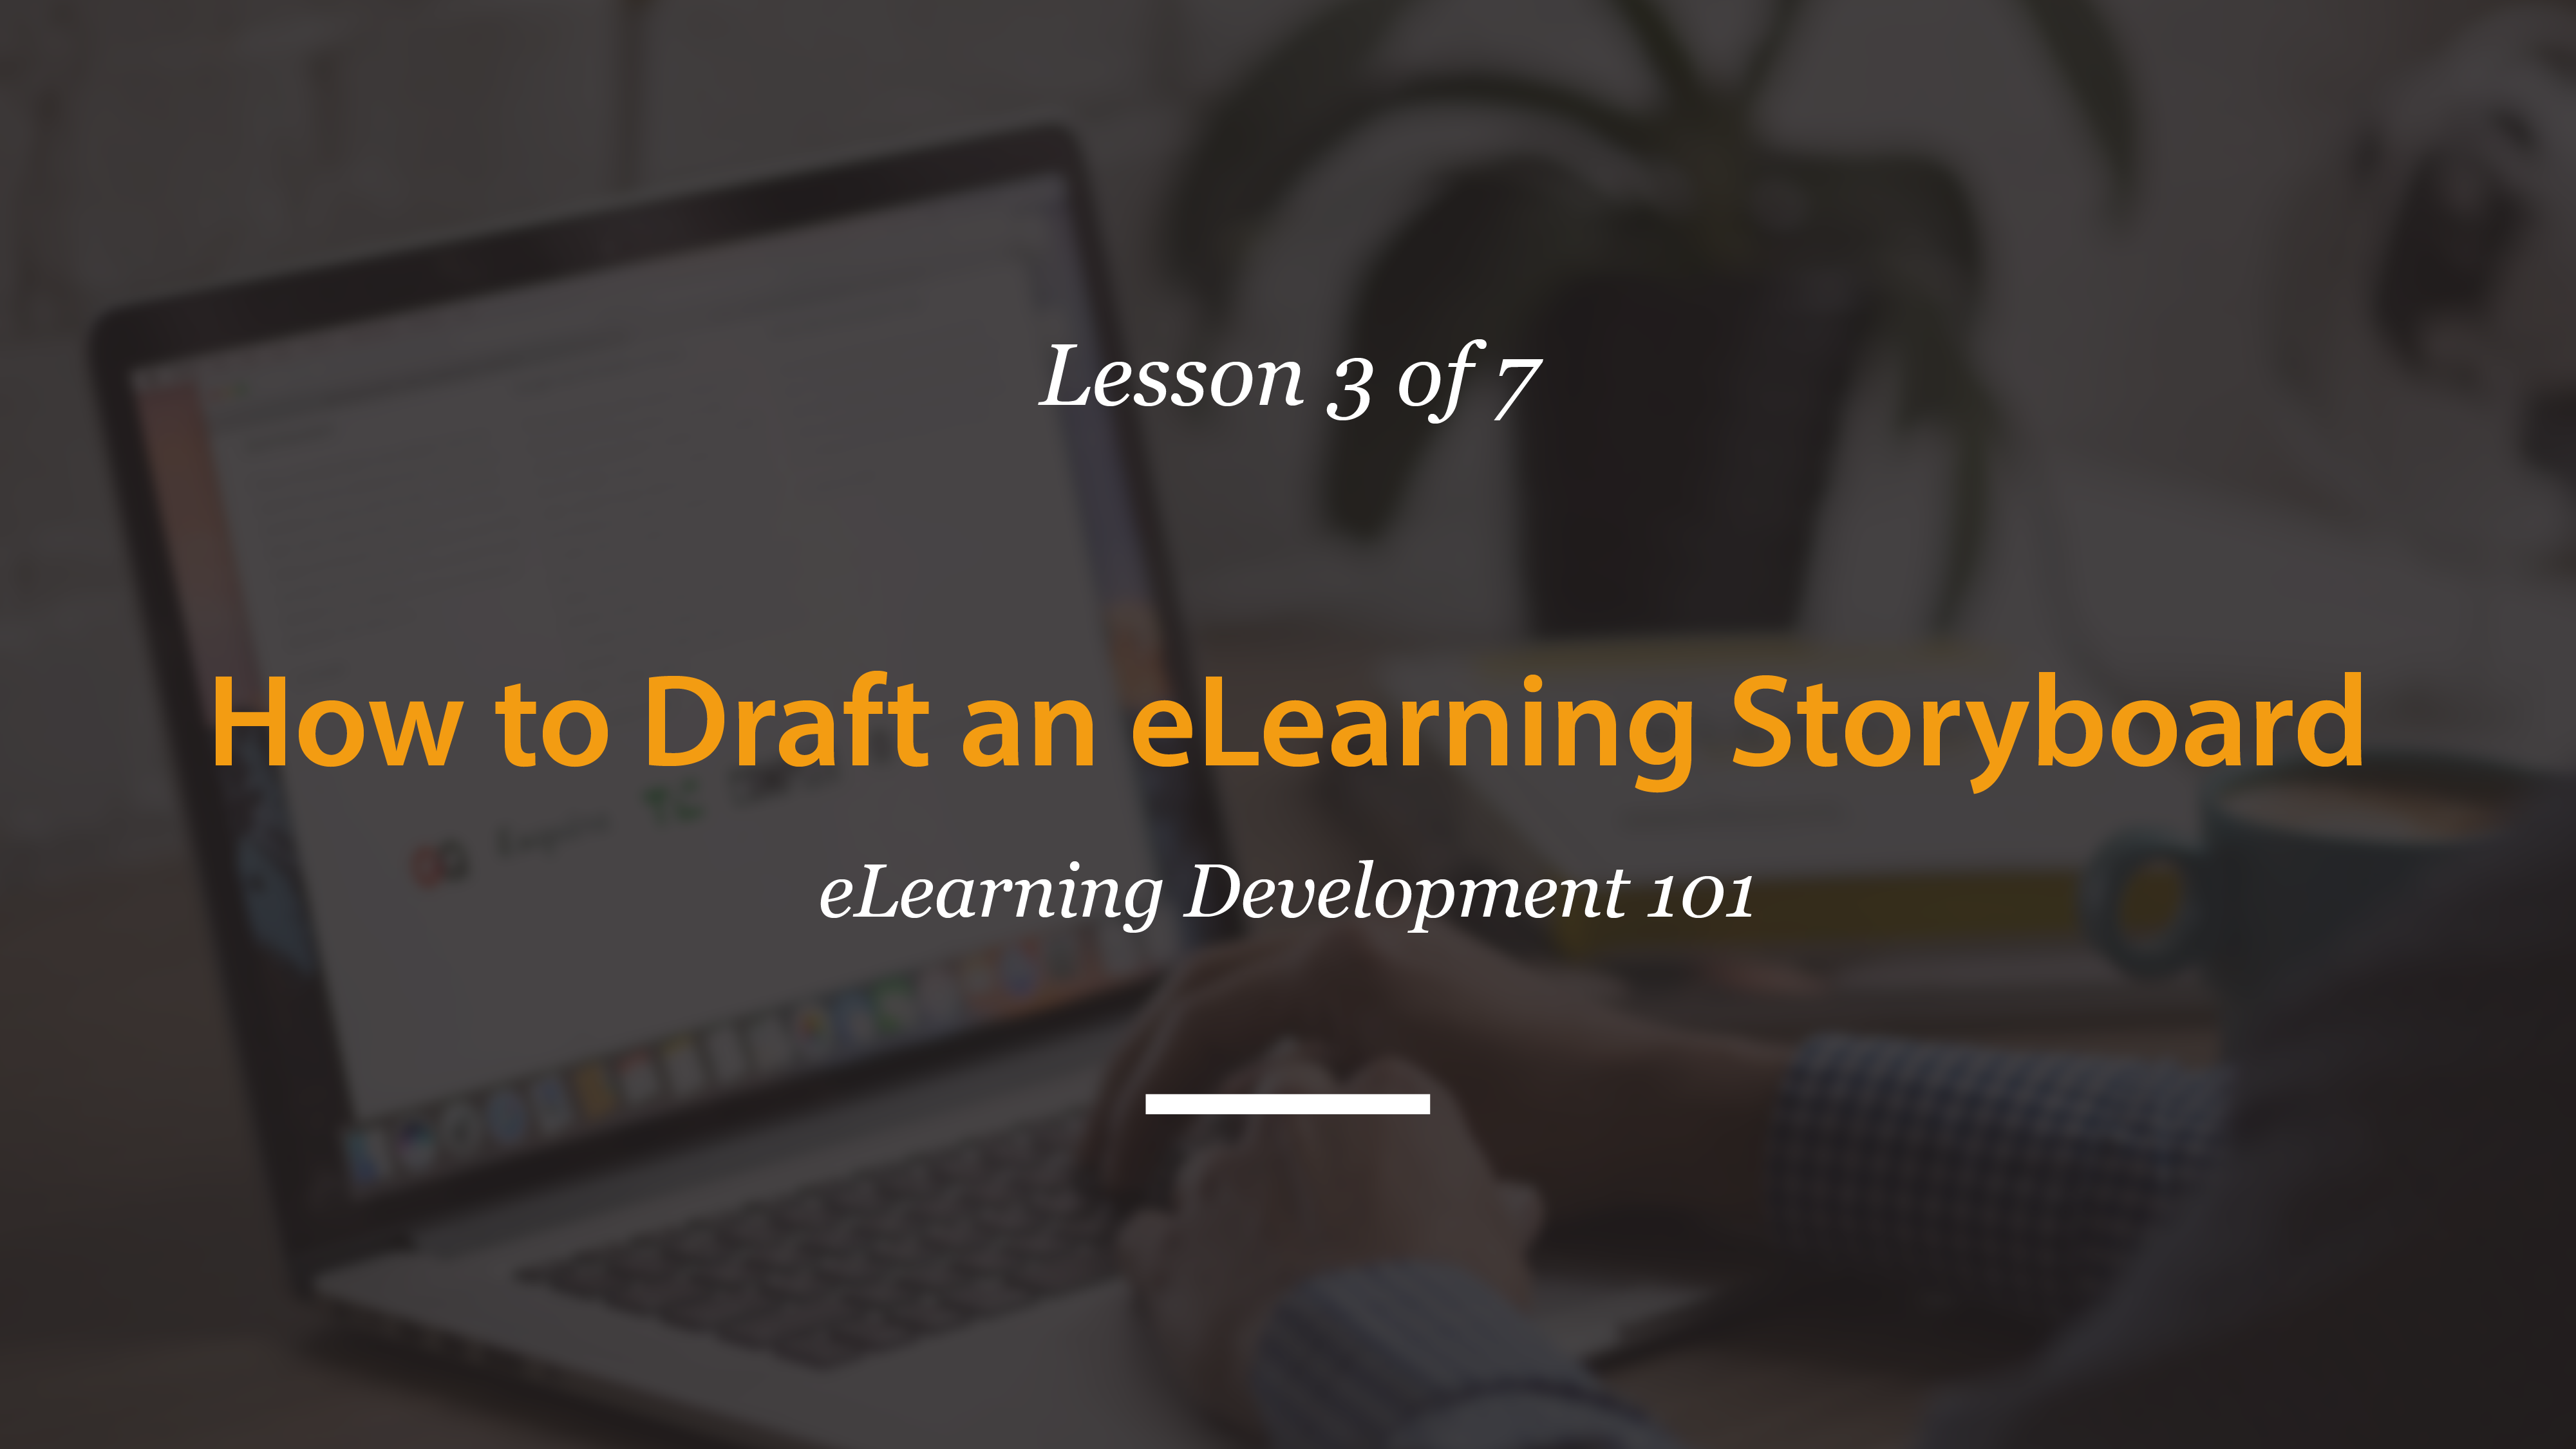 eLearning Development 101 | A FREE 7-Day Video Course by Tim Slade